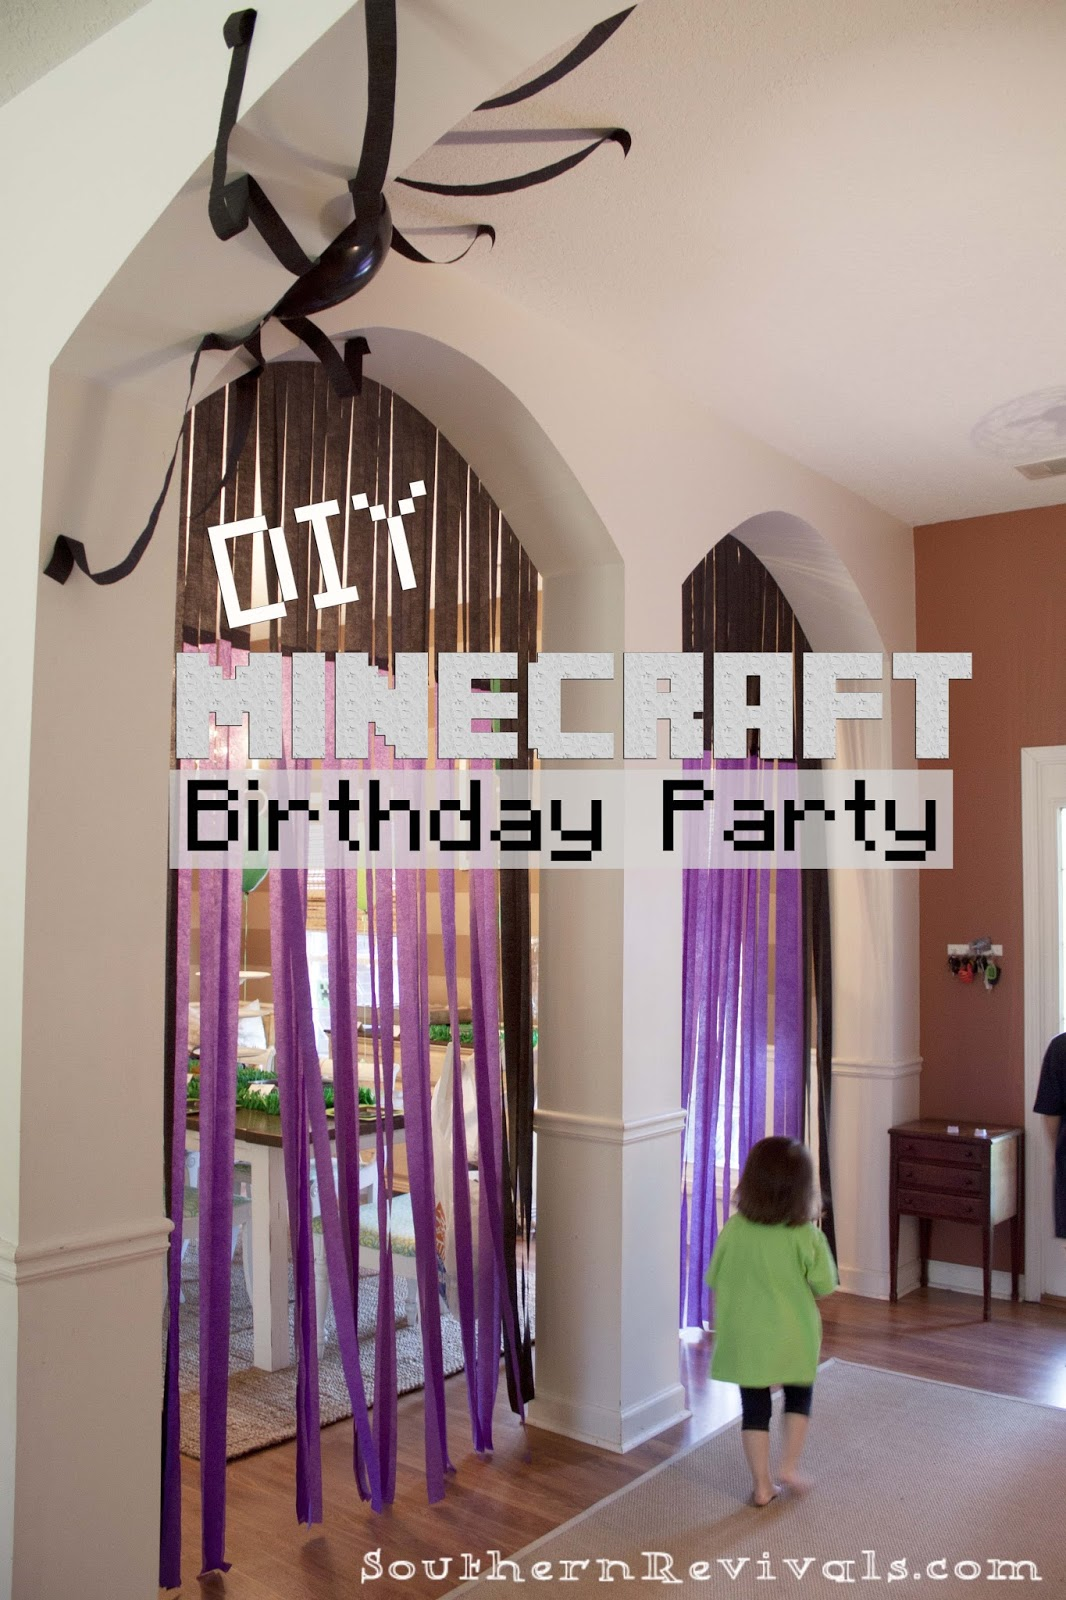 Diy minecraft birthday party craft ideas party favors diy minecraft birthday party solutioingenieria Images